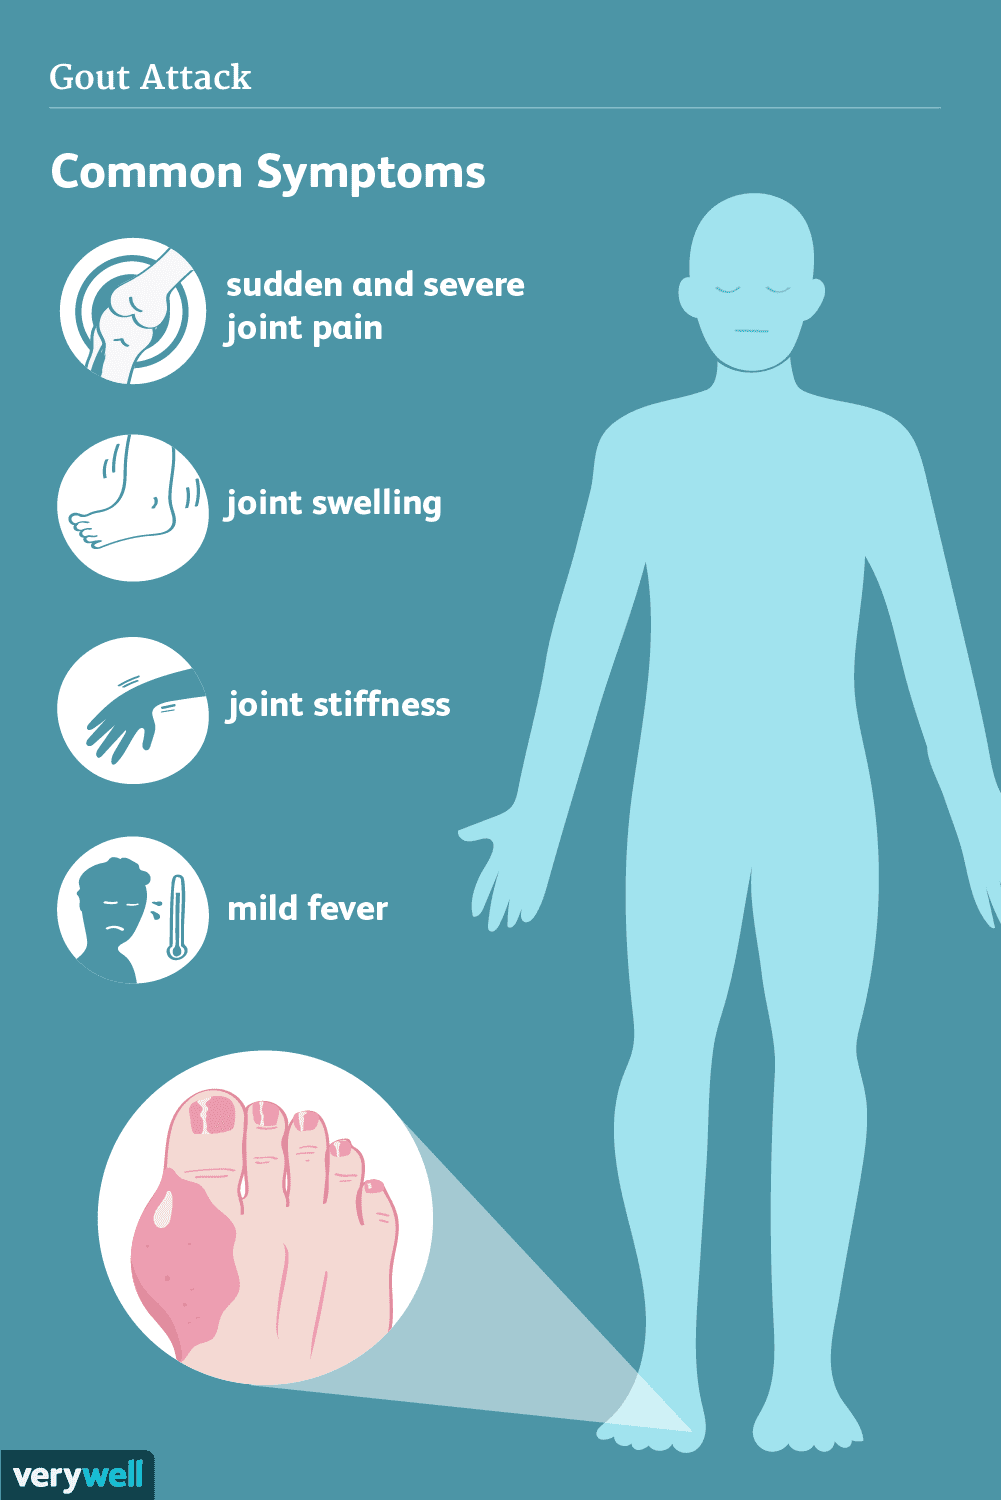 Gout: Signs, Symptoms, And Complications